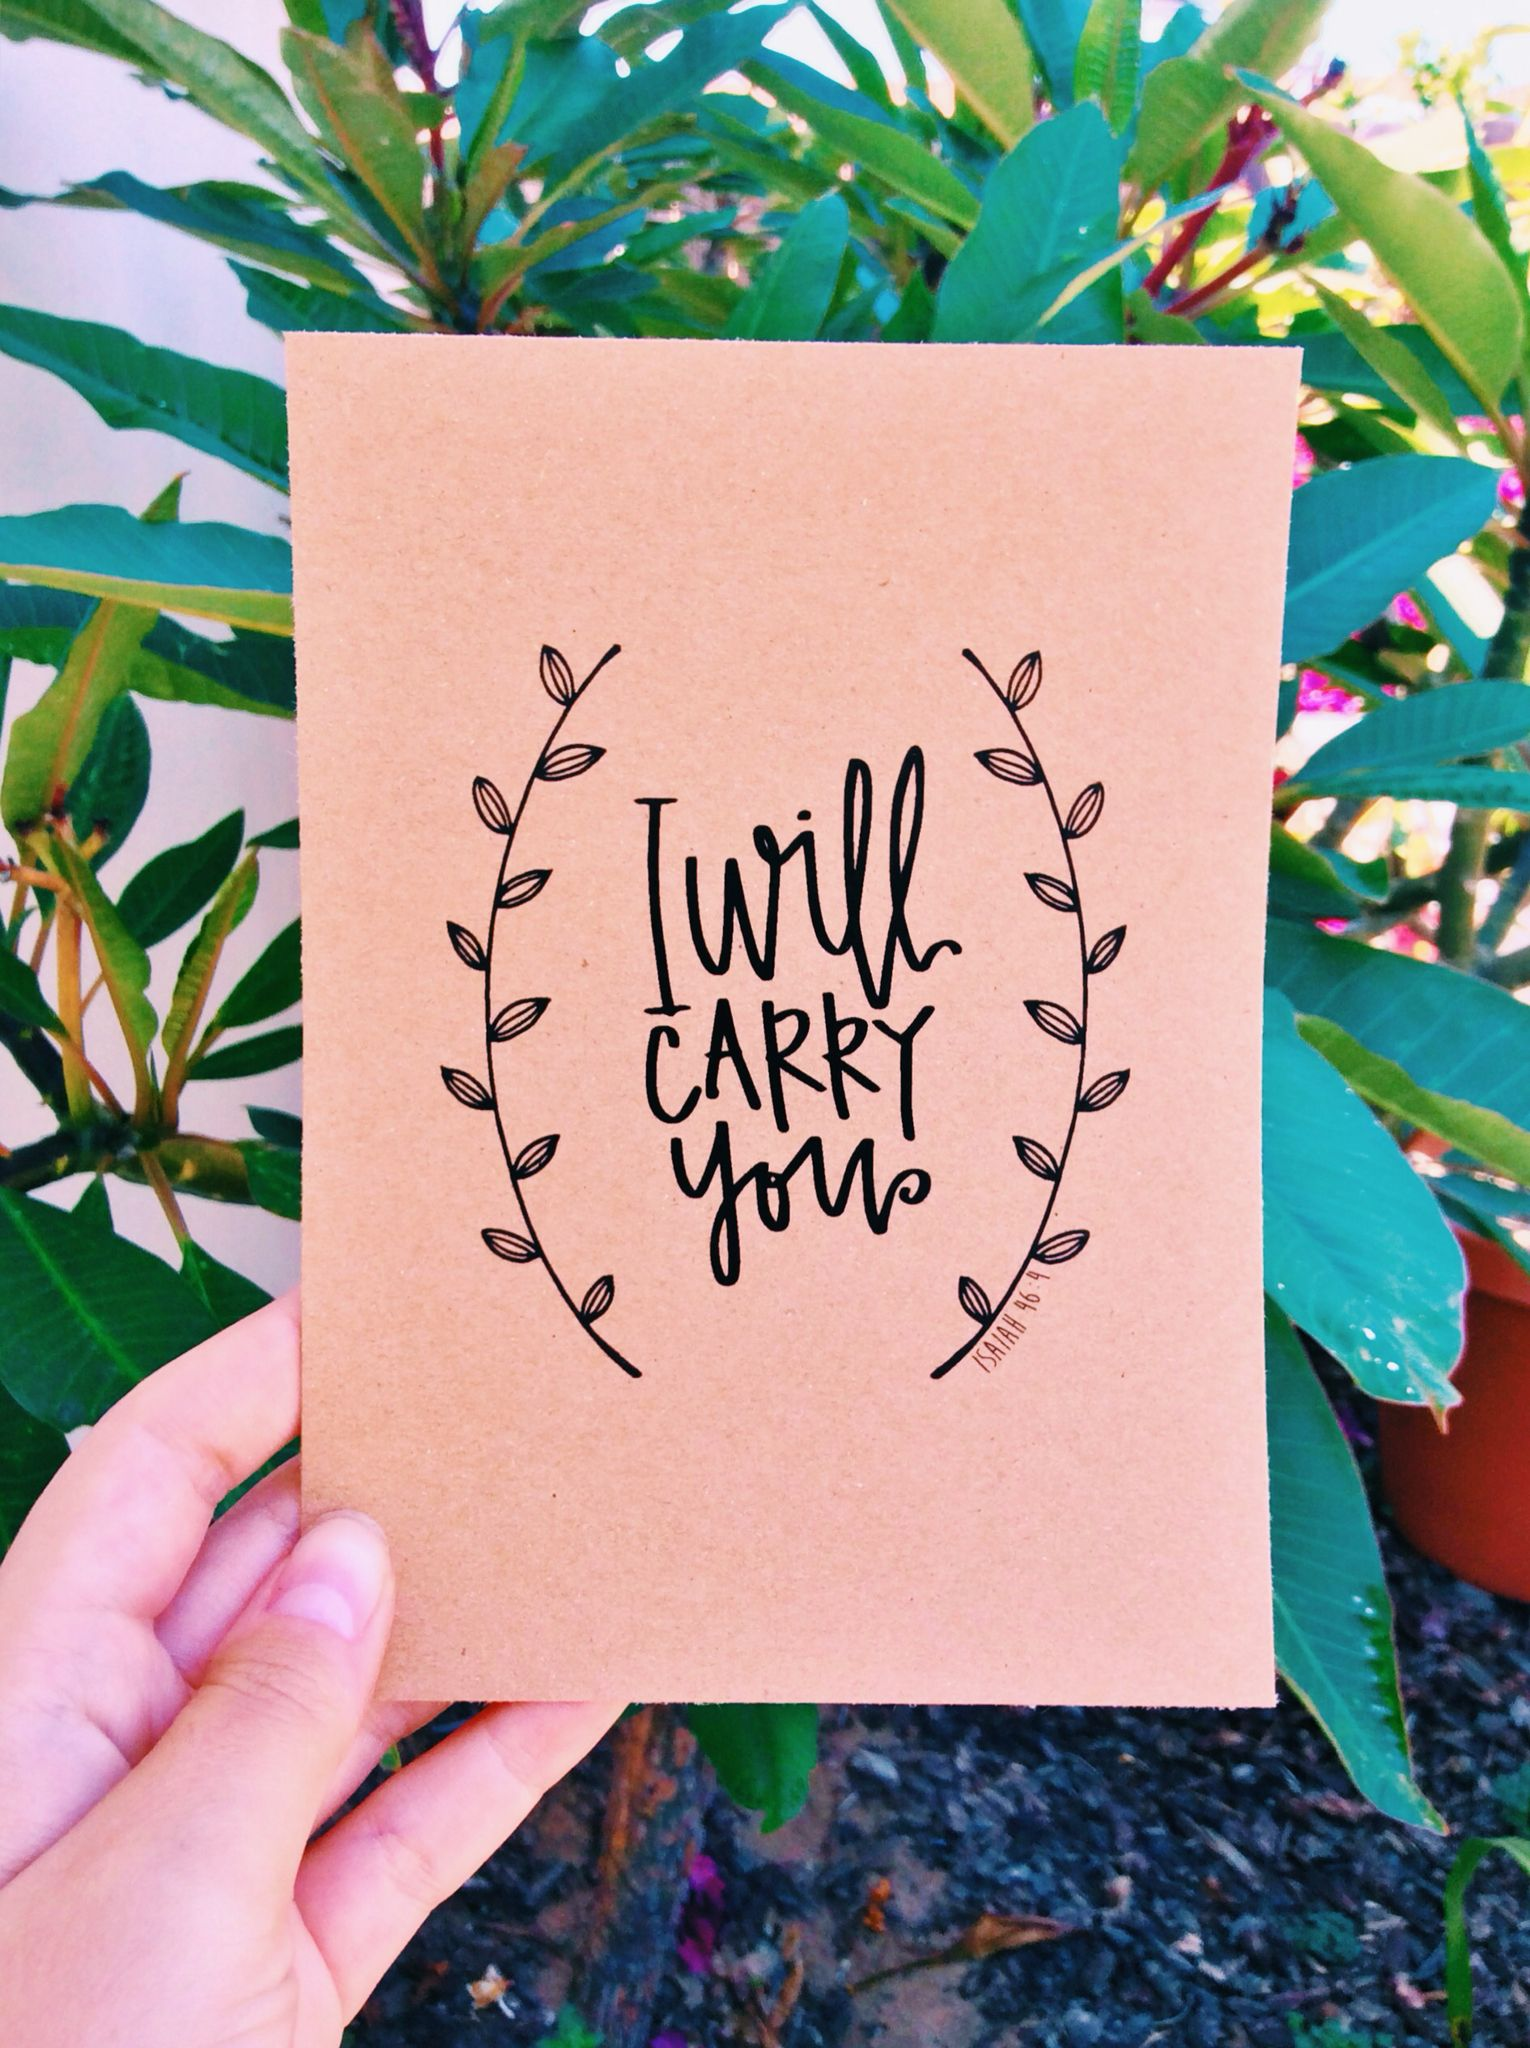 I Will Carry You - Isaiah 46:4 Print - Kraft Paper Vintage ...